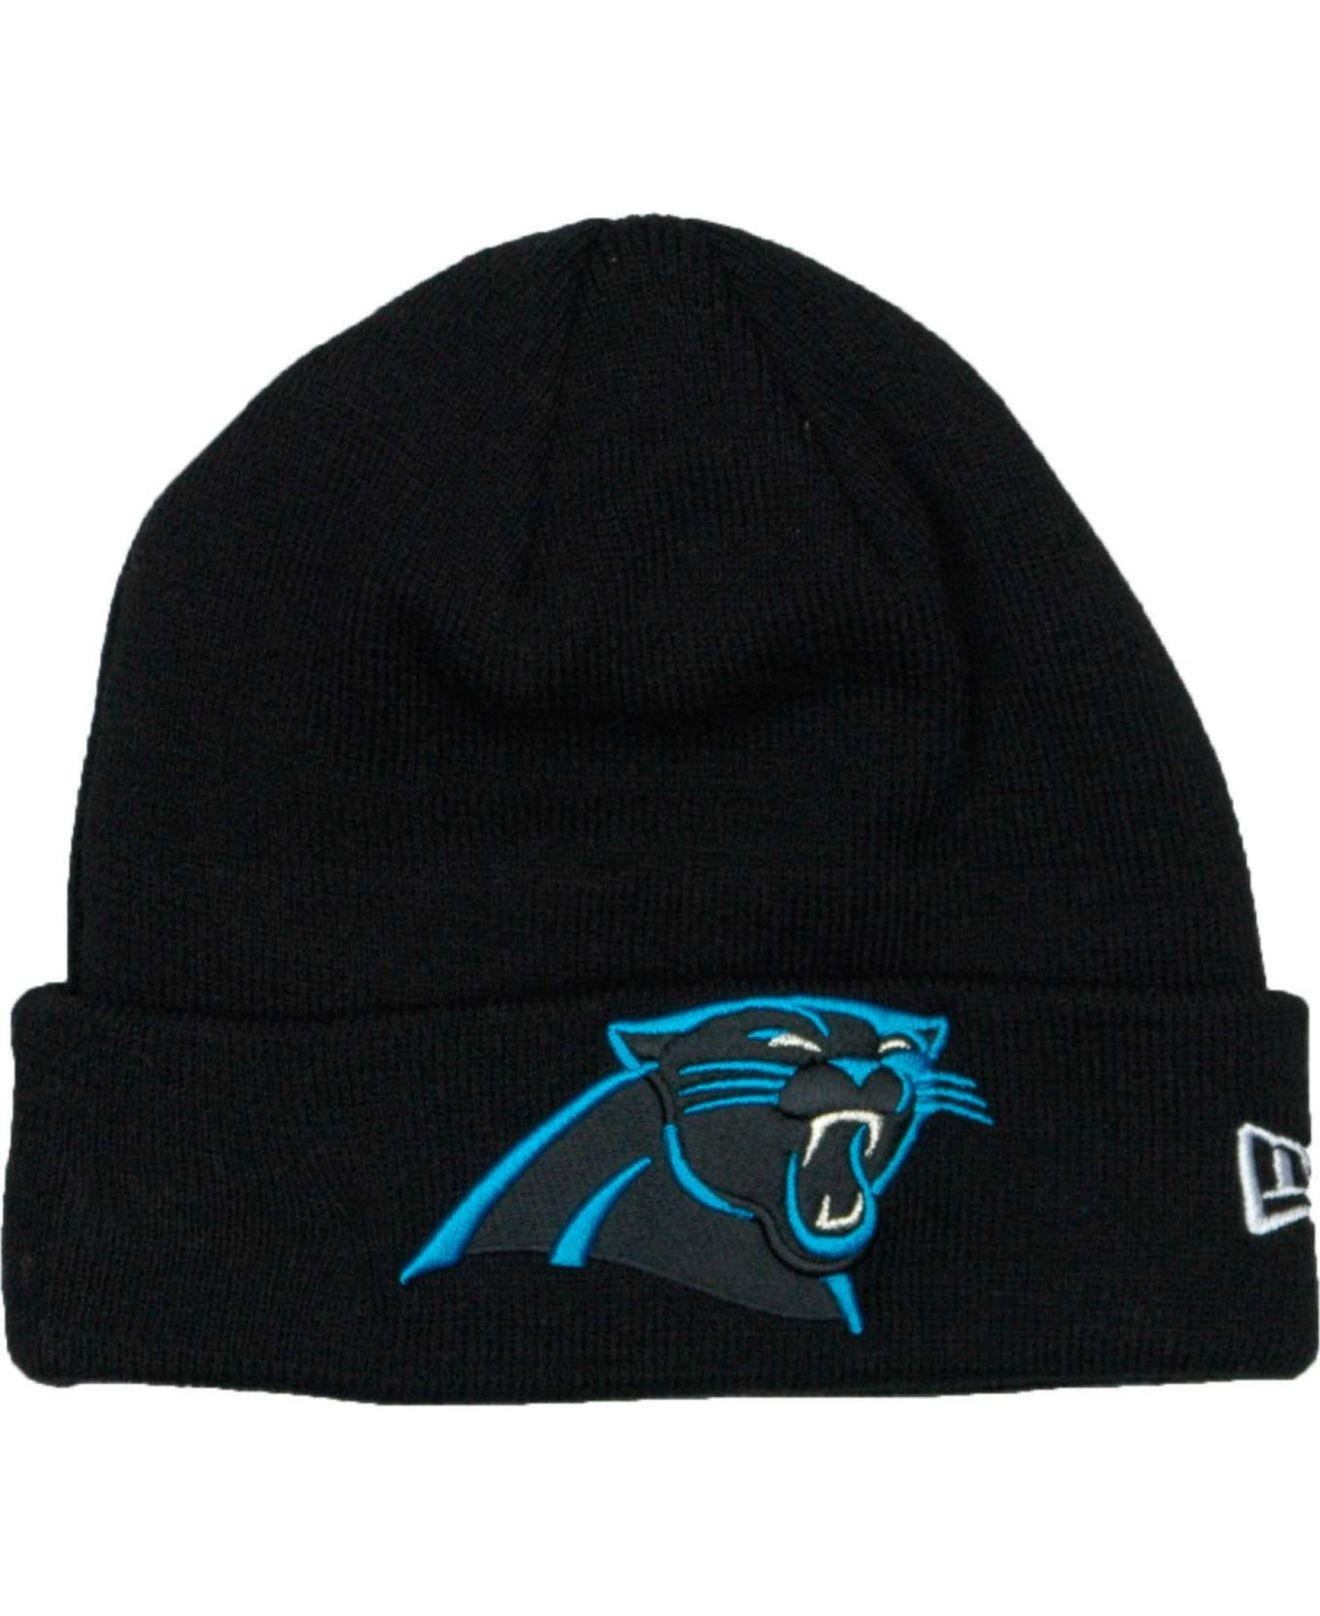 Lyst - KTZ Carolina Panthers Basic Cuff Knit Hat in Black for Men 632f23d7a45